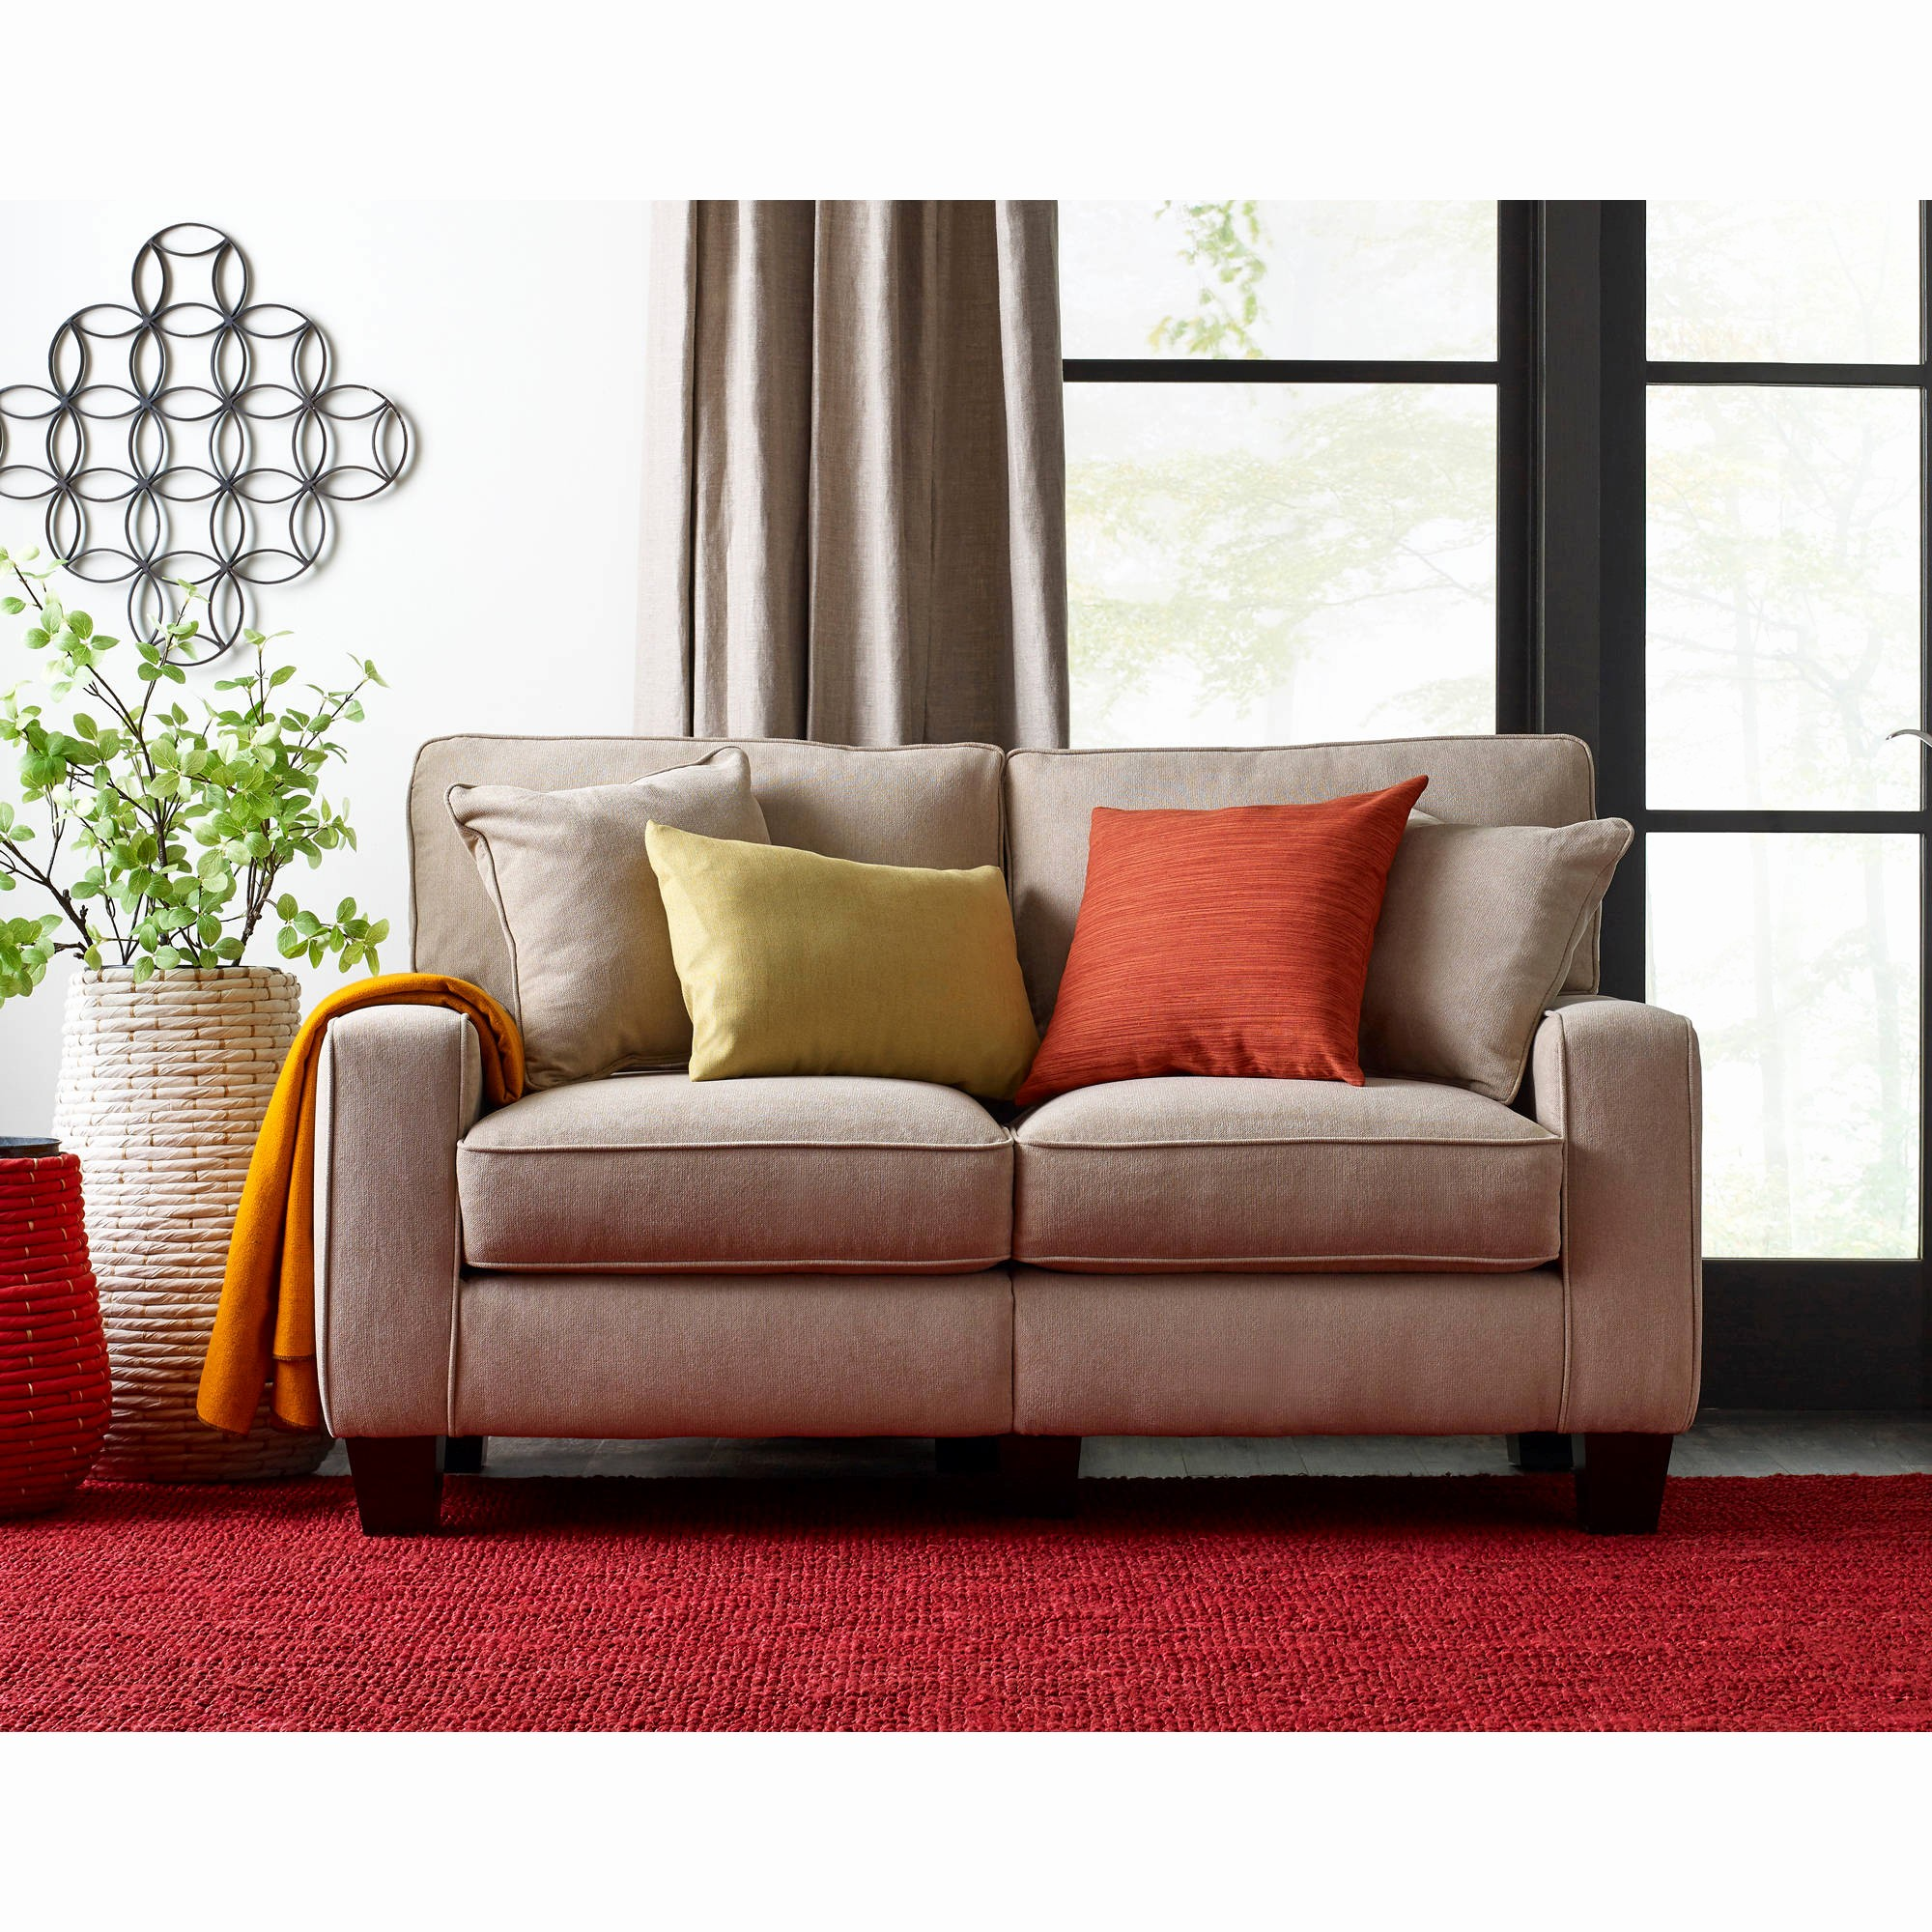 Cheapest Sofa Set: Beautiful Sofa And Loveseat Sets Under 300 Construction